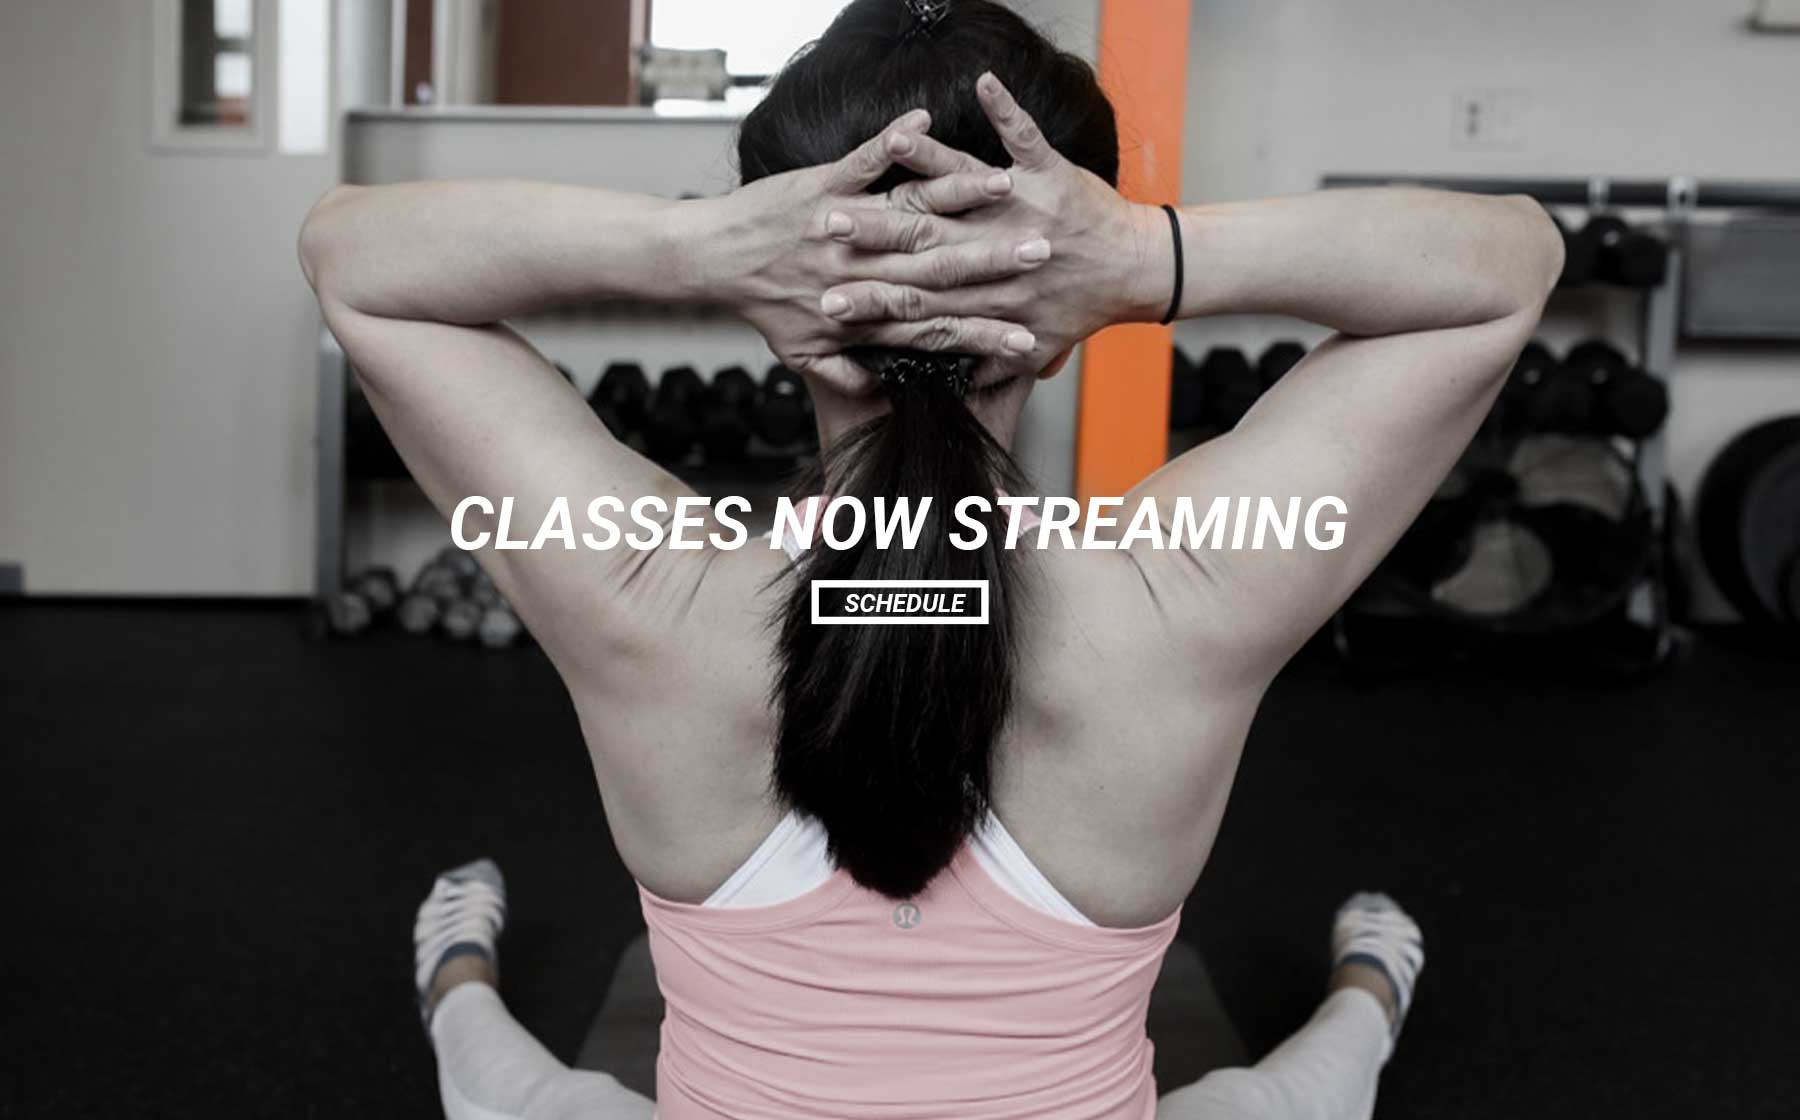 Classes Now Streaming